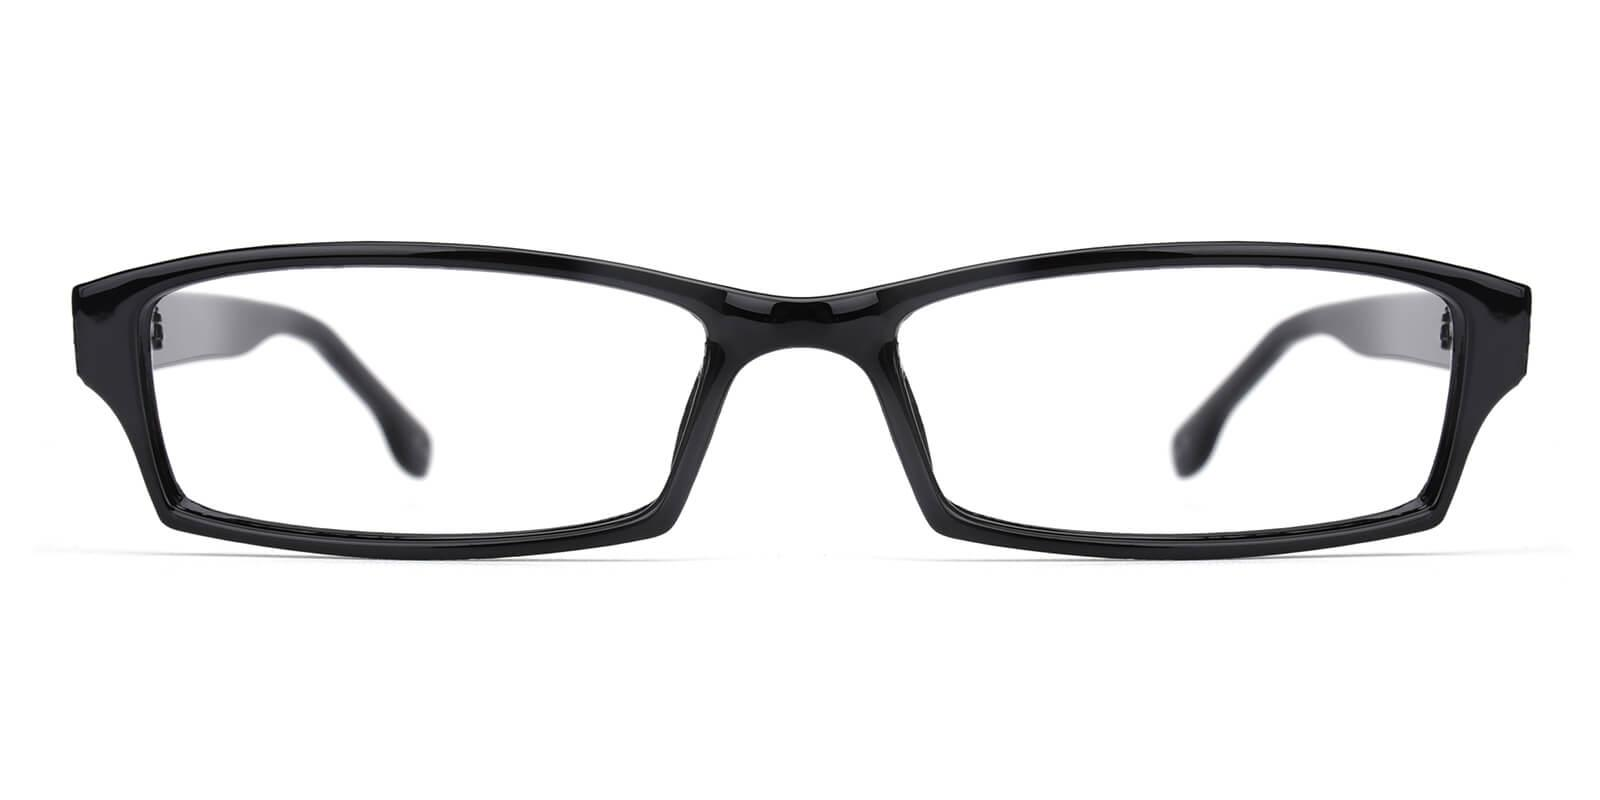 Relica-Black-Rectangle-Plastic-Eyeglasses-additional2